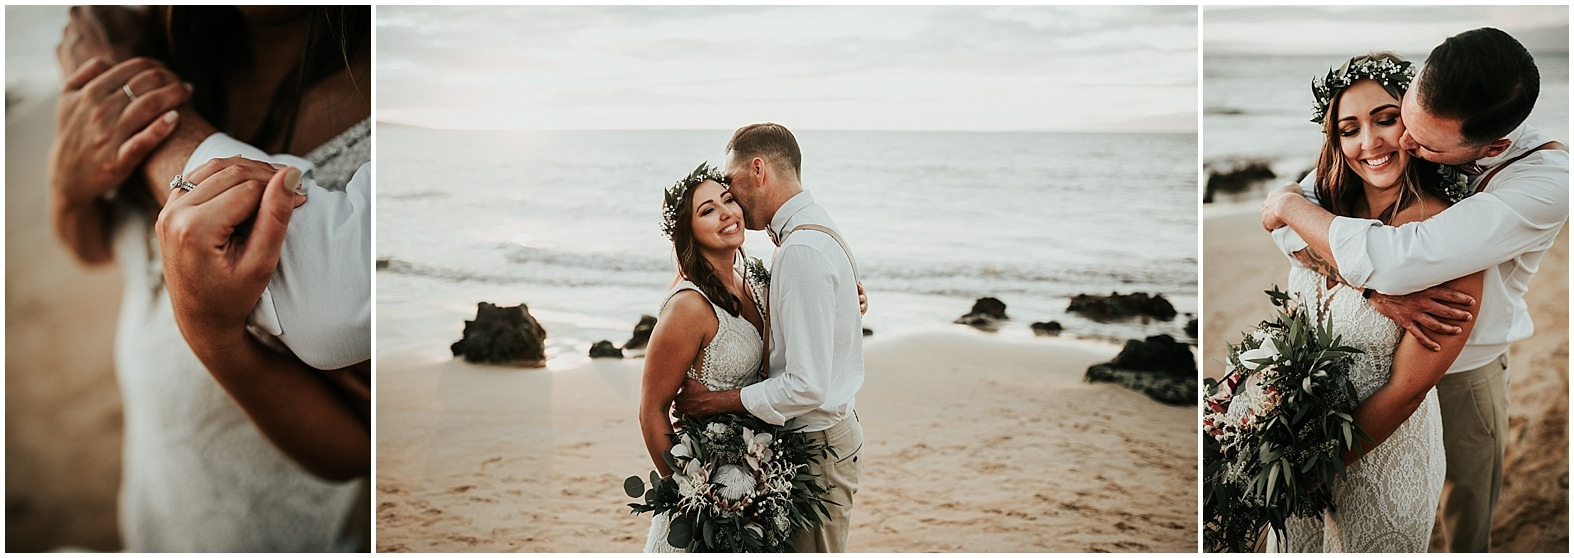 Wailea wedding photographer maui22